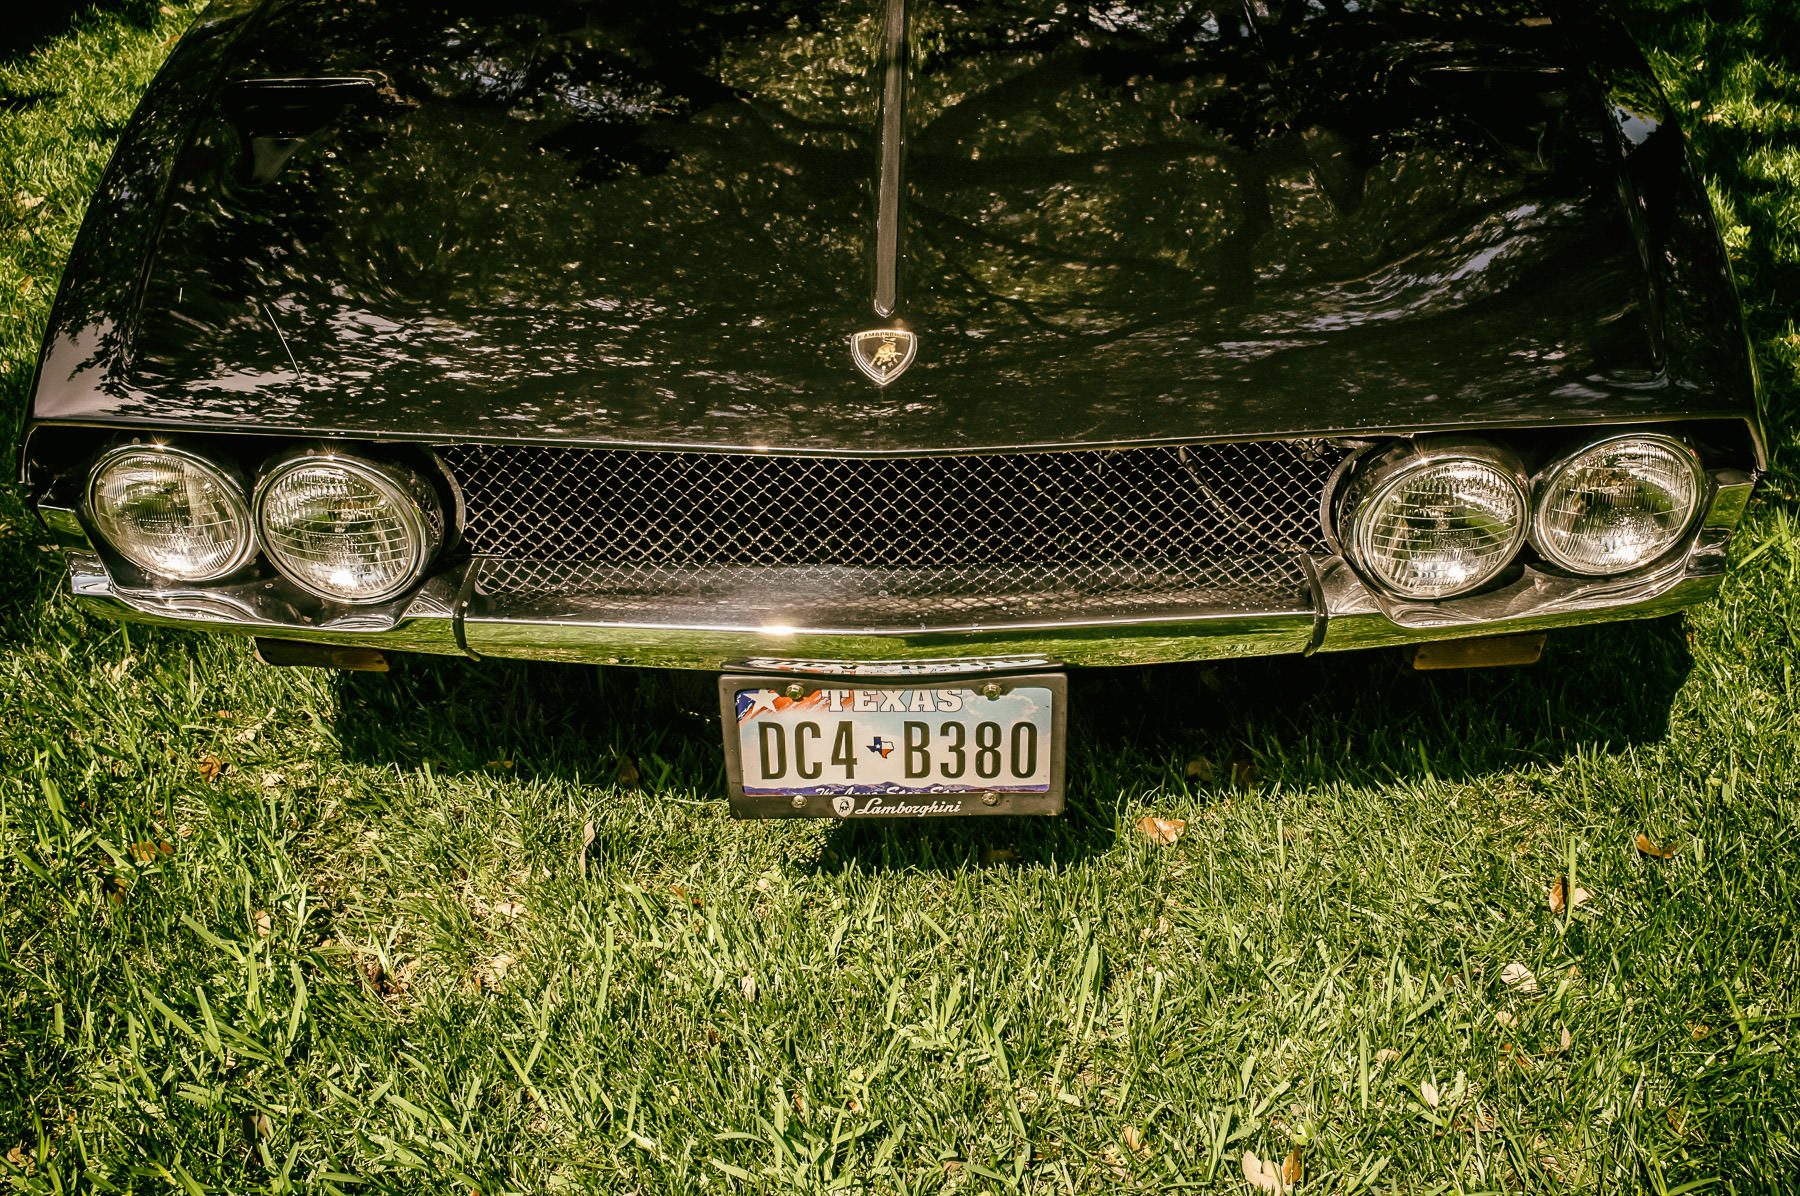 Detail of a classic Lamborghini Espada—named for the sword a bullfighter uses to kill the bull in the ring—at the Cars in the Park event at Dallas' Cooper Aerobics Center.